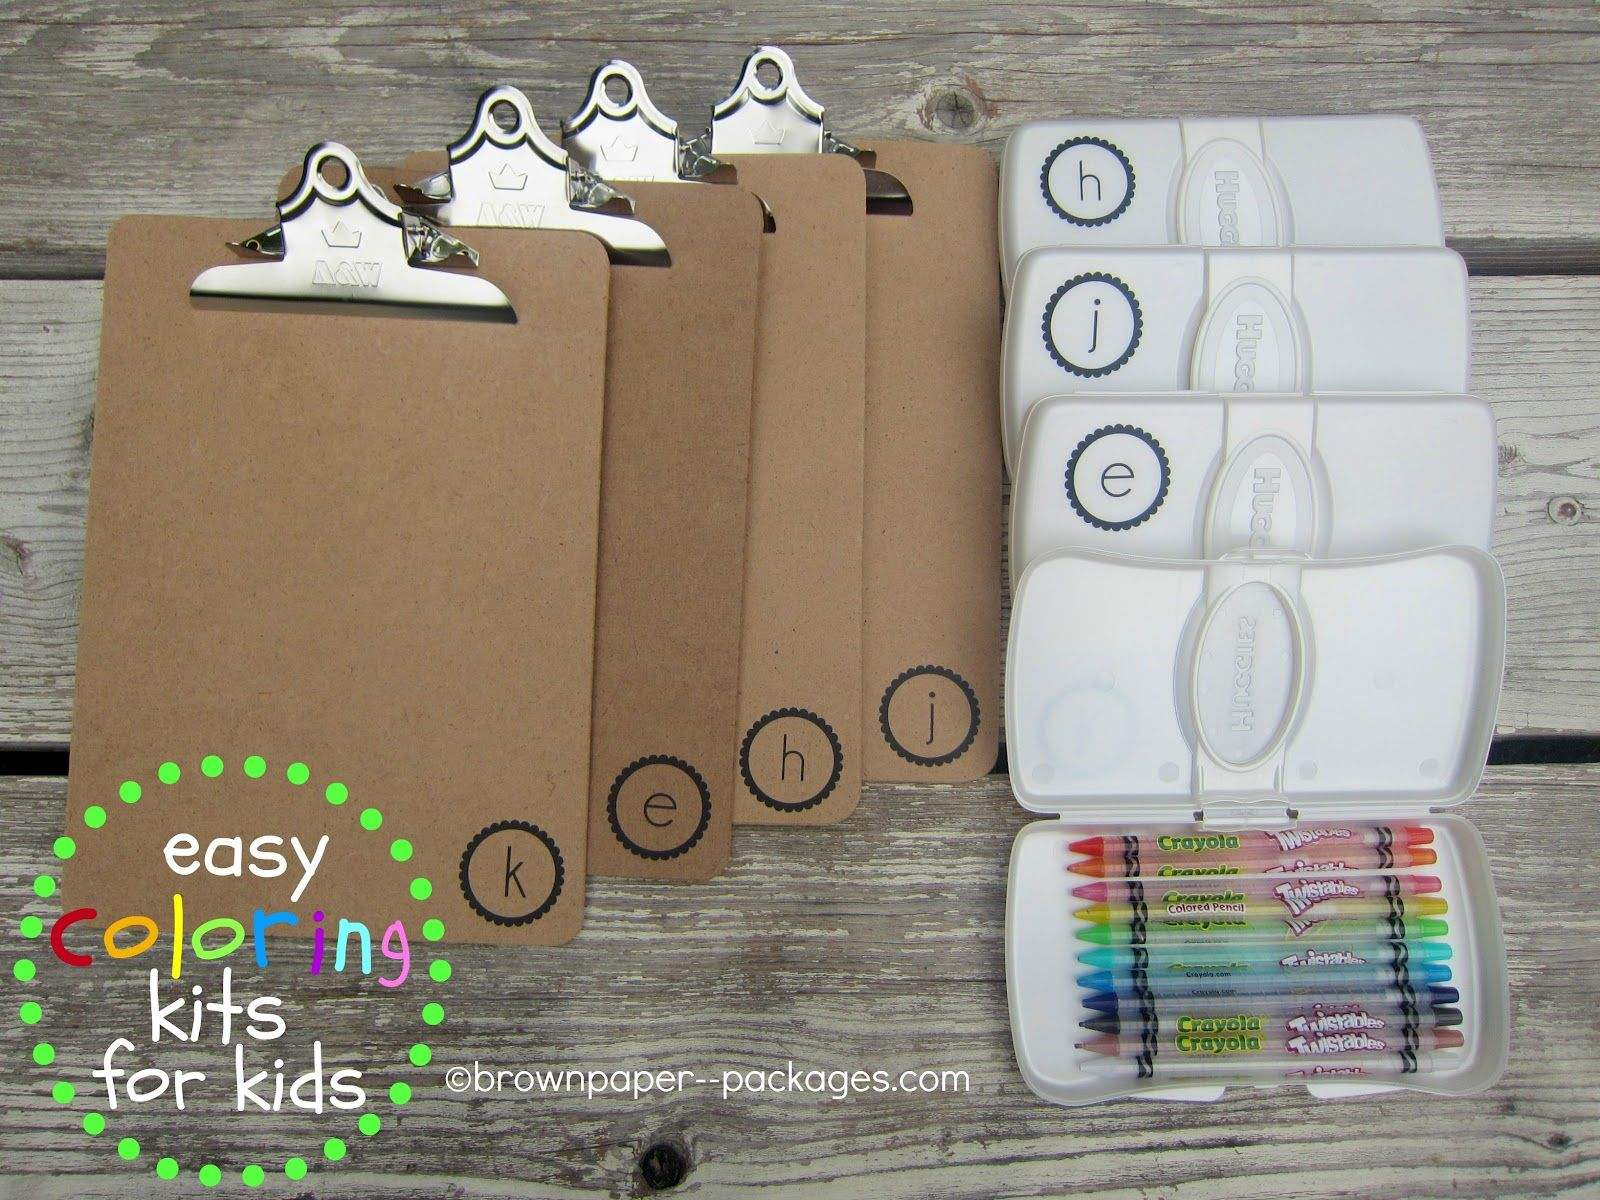 clipboards + wipes cases = easy coloring kits for kids} | To Do ...